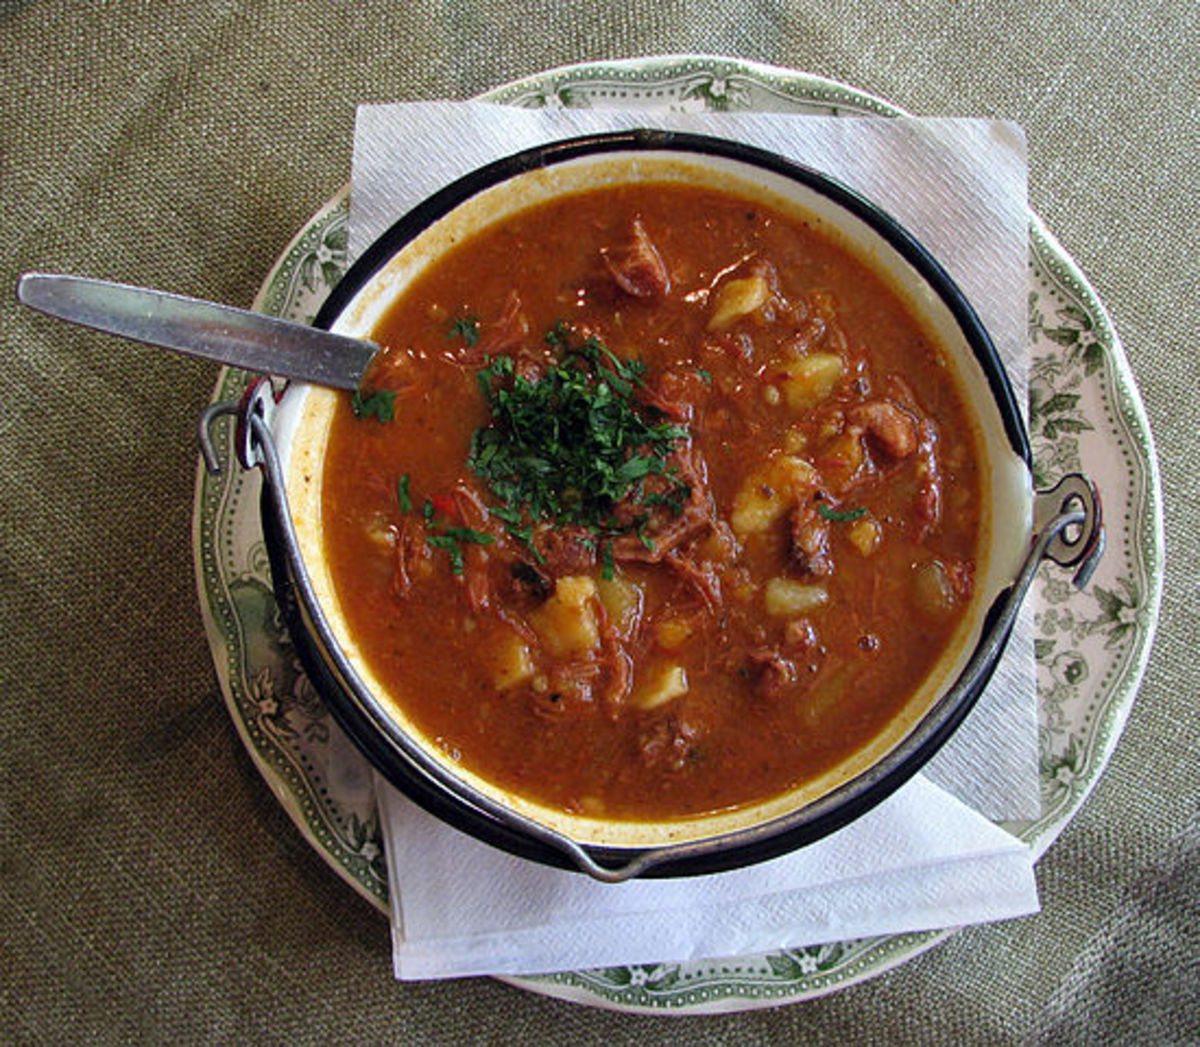 -but what Goulash! Delicious and easy.